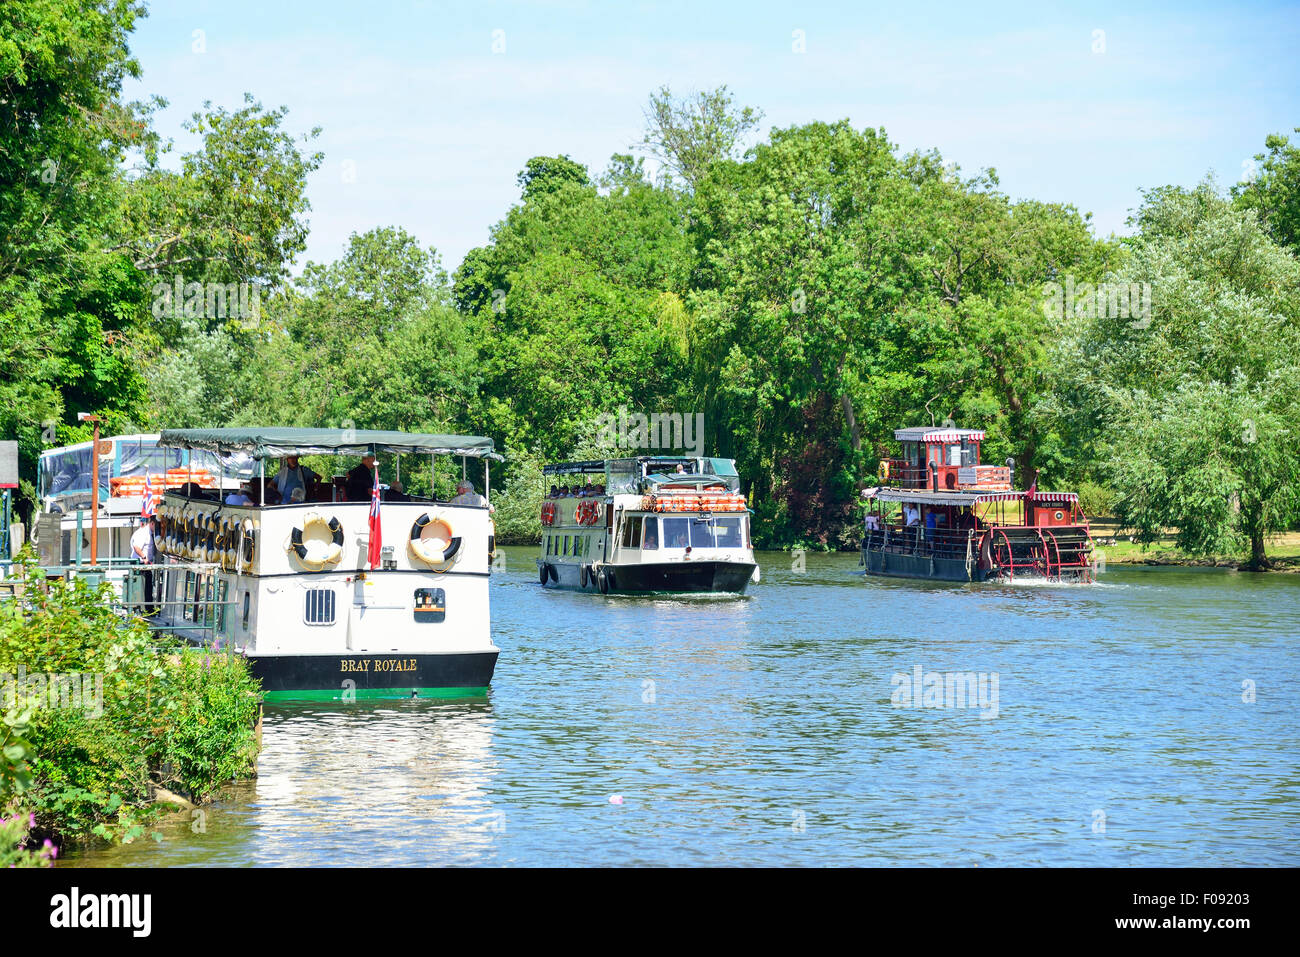 French Brothers cruise boats on River Thames, Runnymede, Surrey, England, United Kingdom - Stock Image